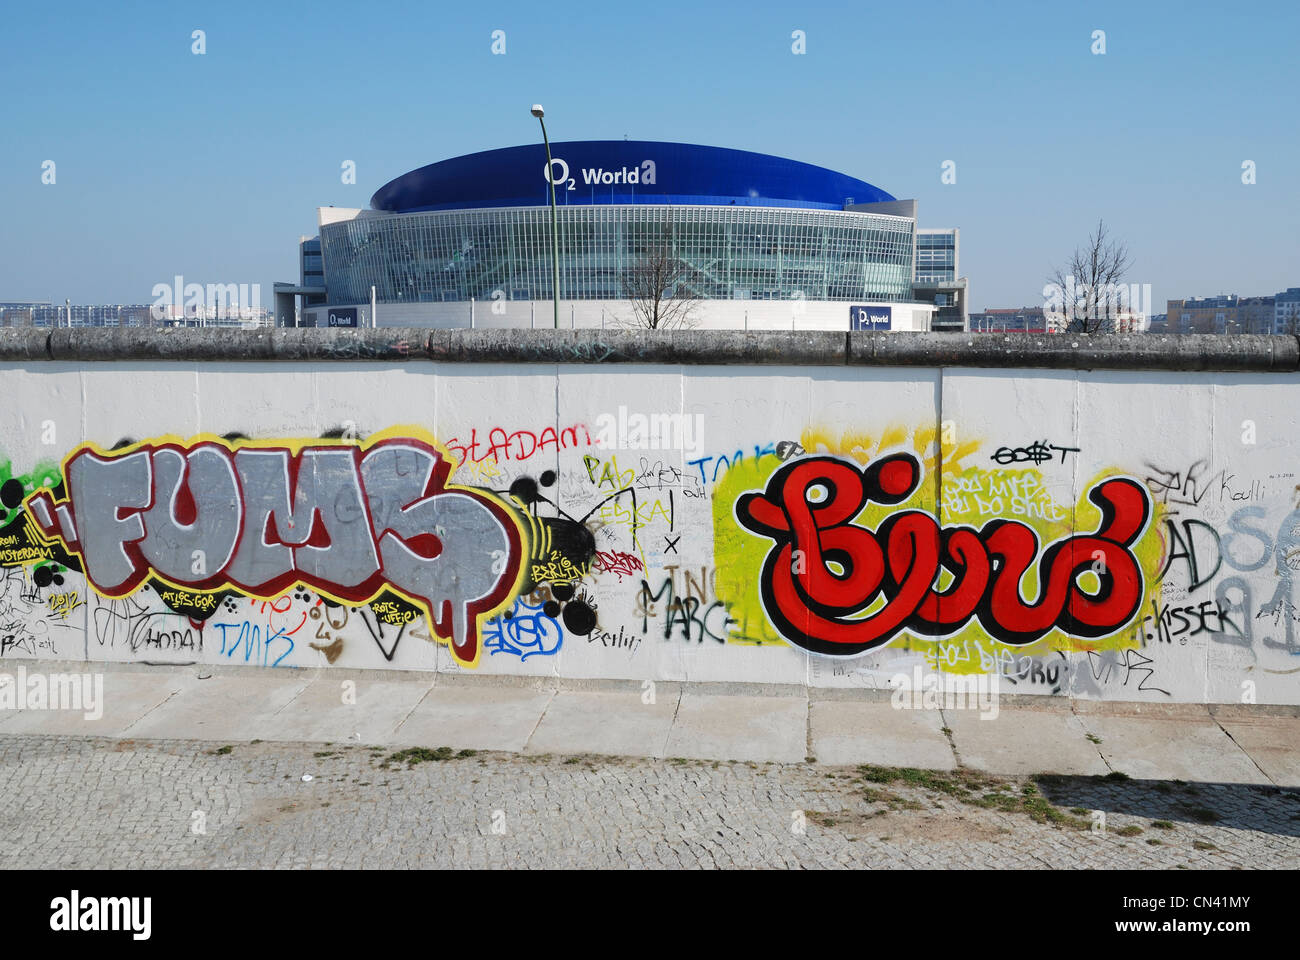 Grafiti wall berlin - Stock Photo The Graffiti Covered Western Side Of The Berlin Wall At The East Side Gallery With The O2 World Arena In The Background